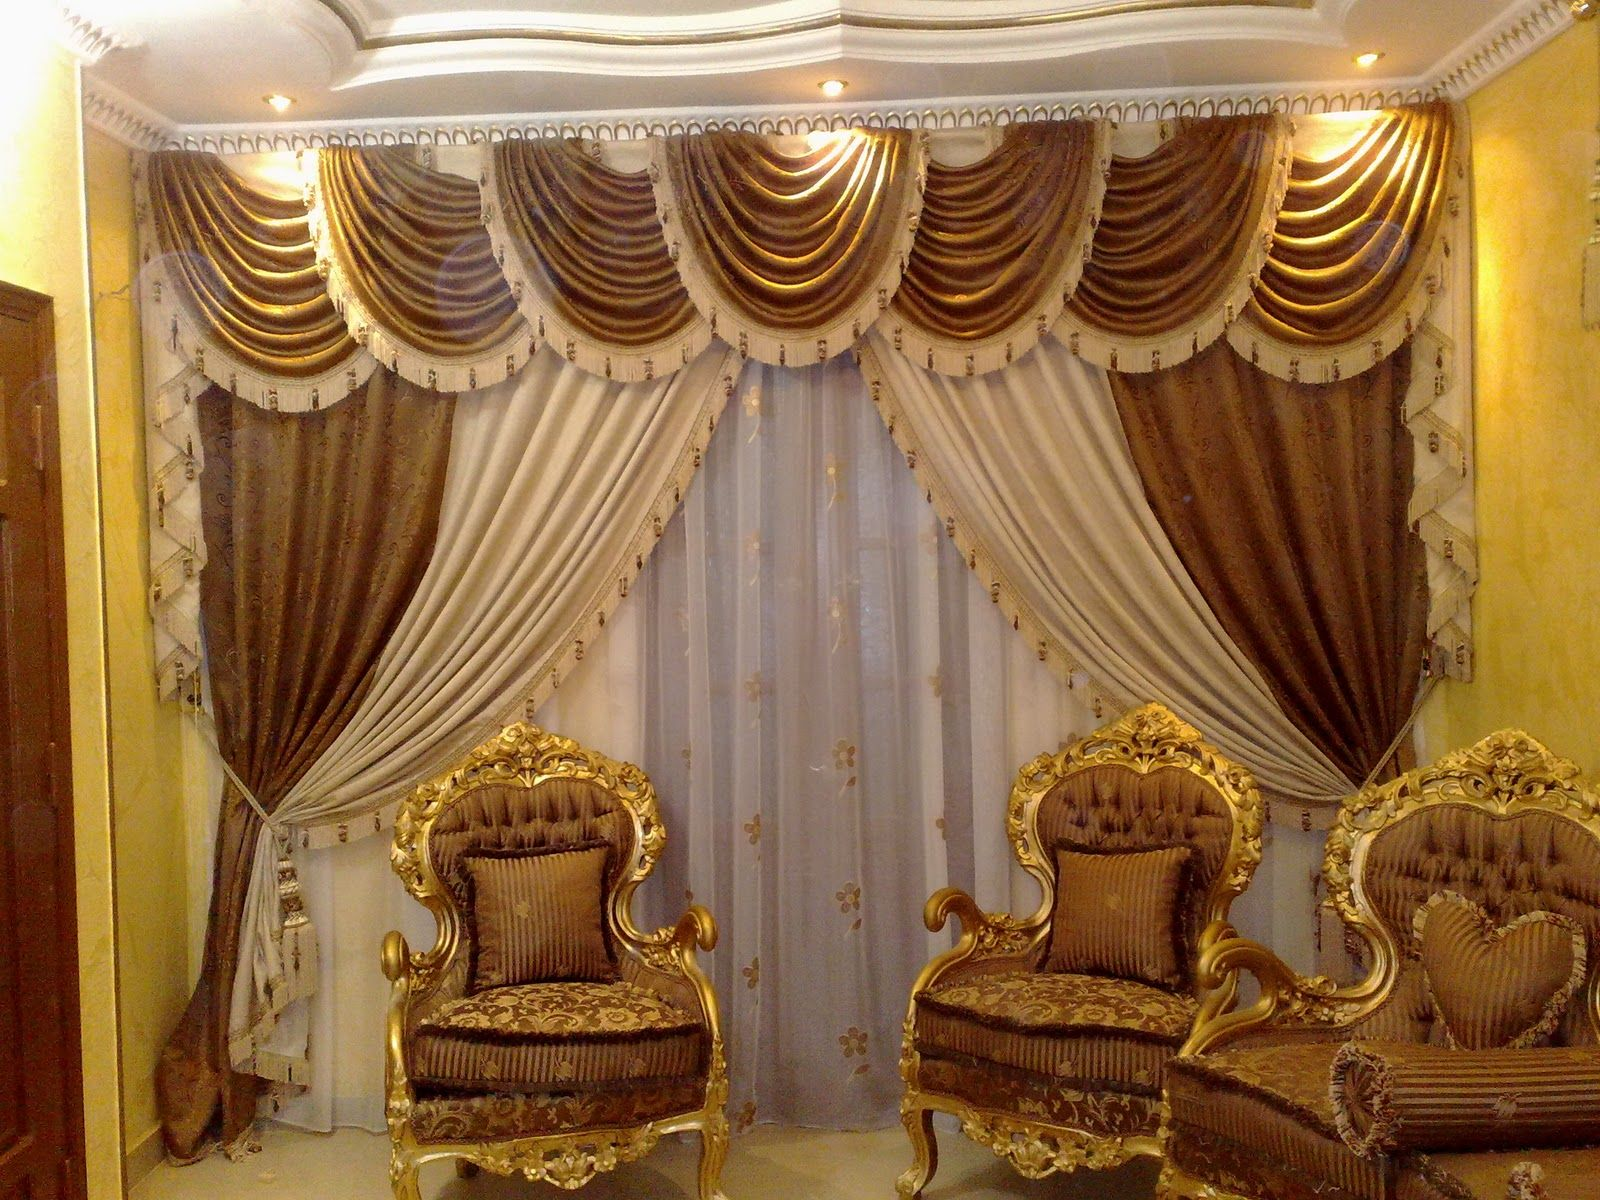 Curtain Designs luxurious living room curtains | luxury curtain designs for small